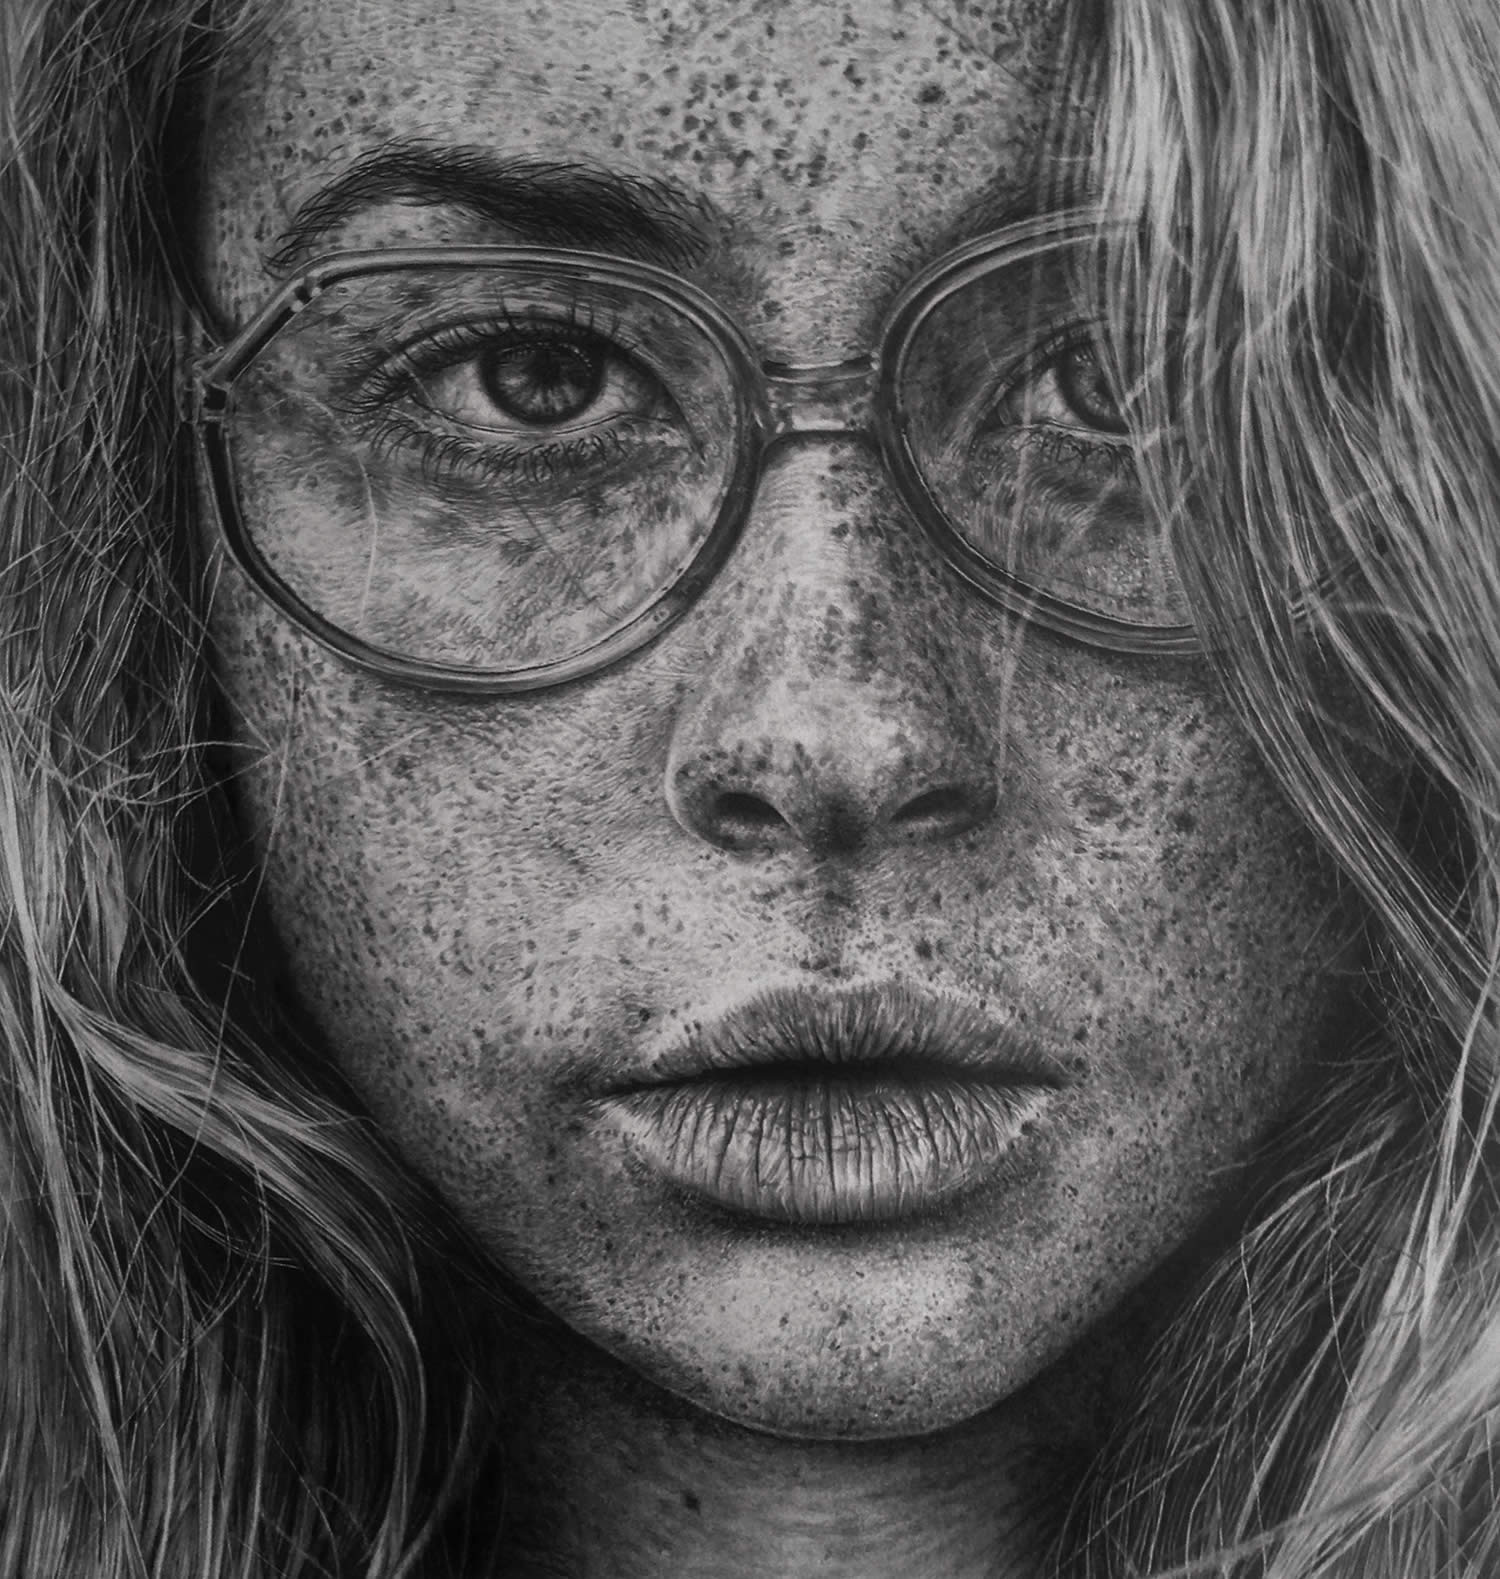 freckle girl with glasses by monica lee